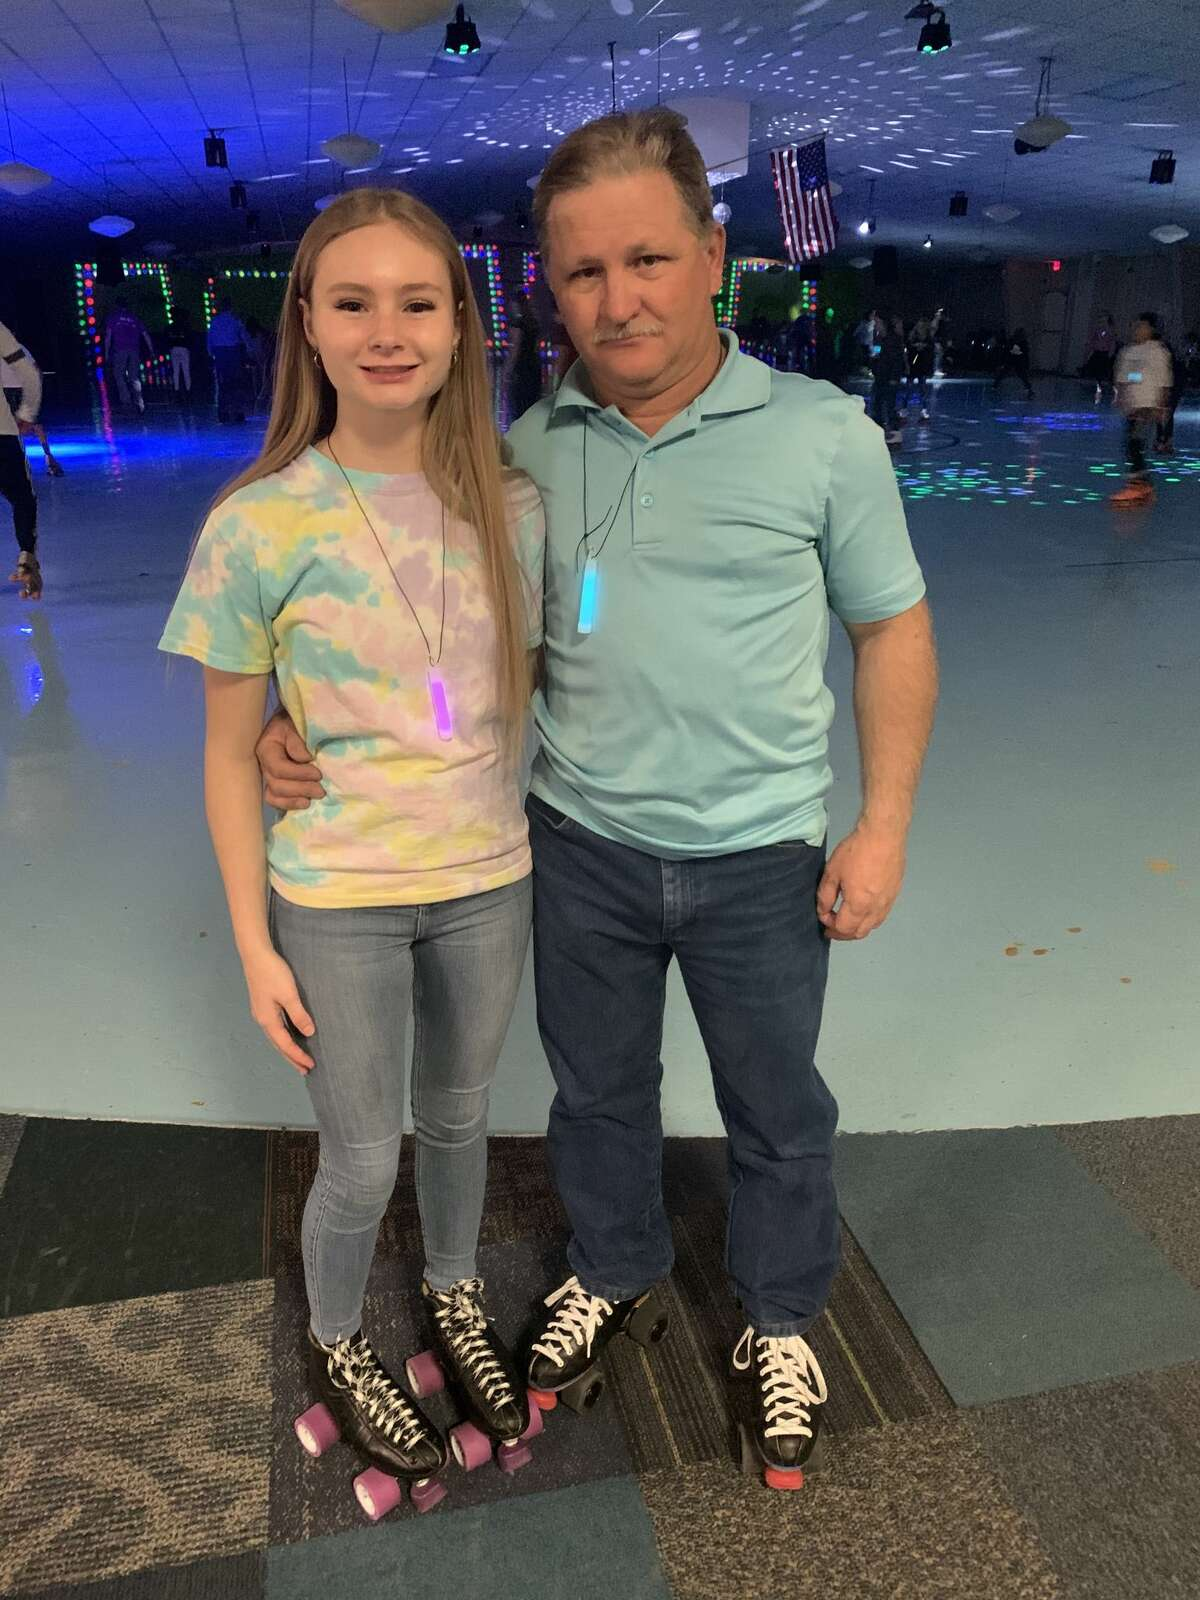 Roller skating: Joely Mathes, left, and Joe Mathes